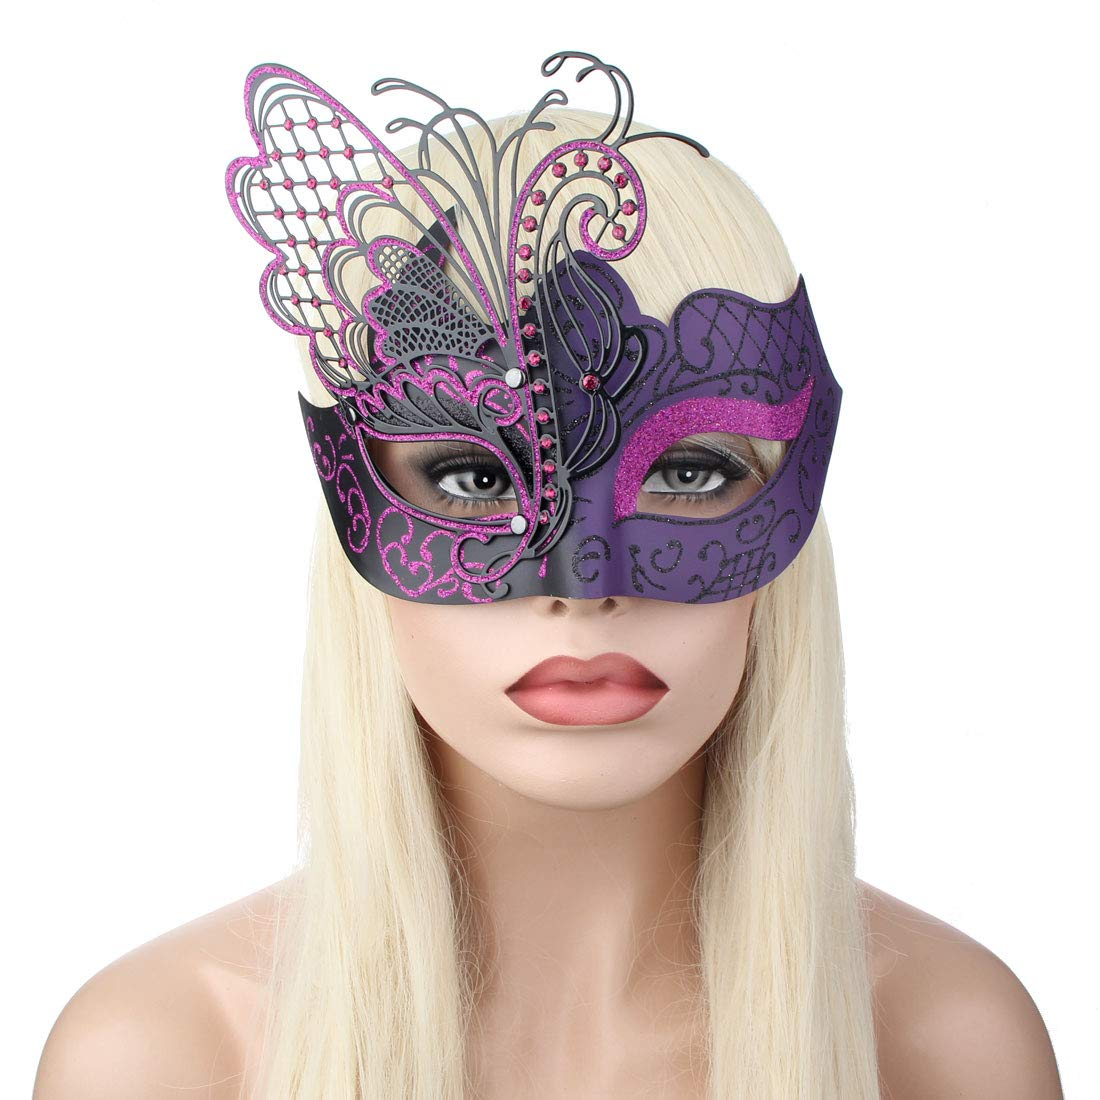 IETANG Couple Mask Half Venetian Masquerade Ball Mask Party Costume Accessory